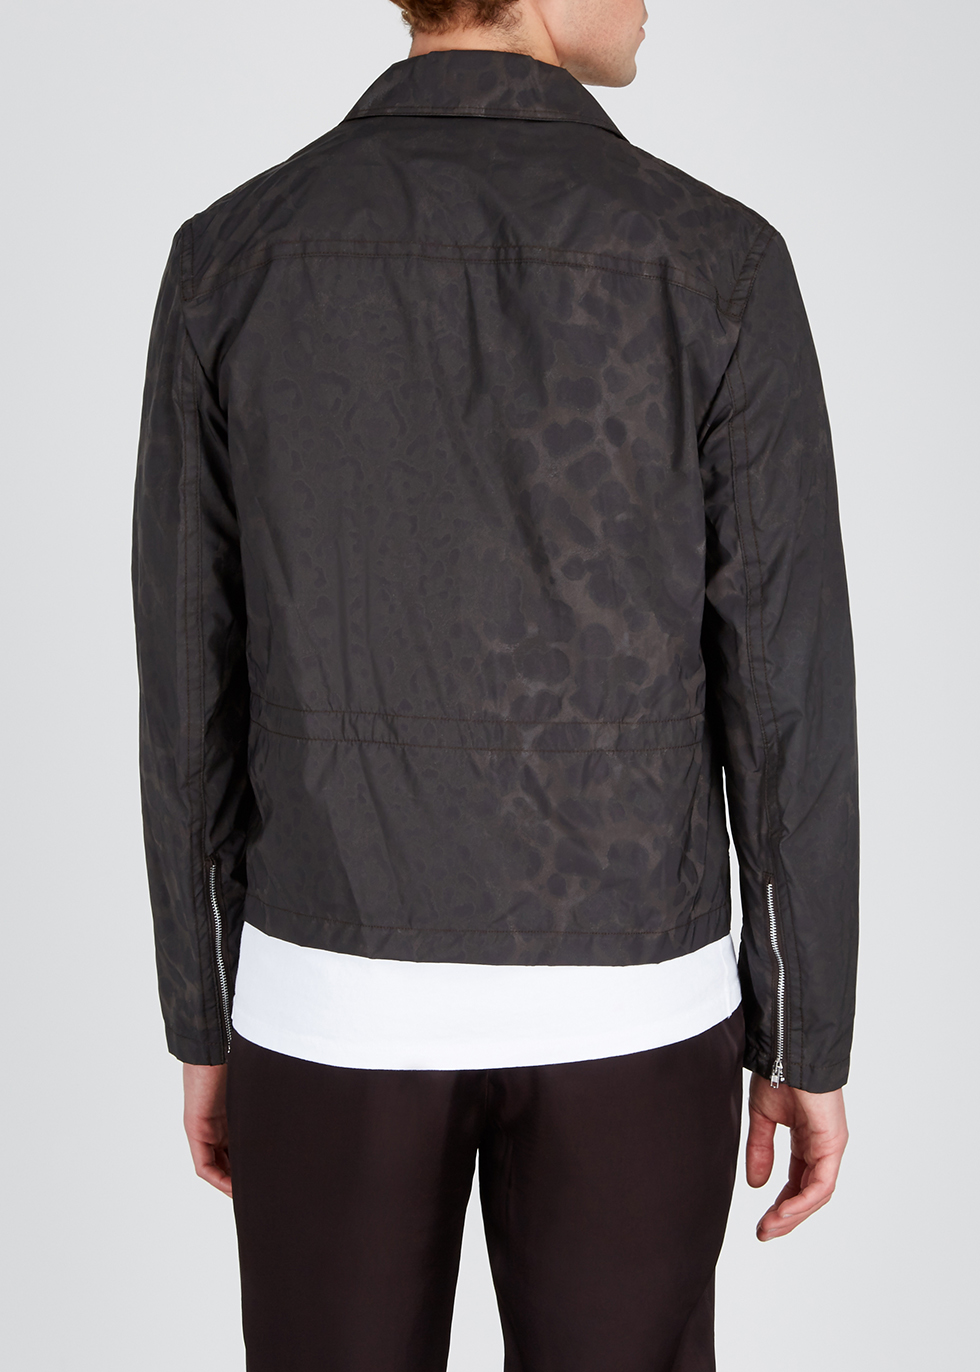 Faded leopard-print shell jacket - Helmut Lang